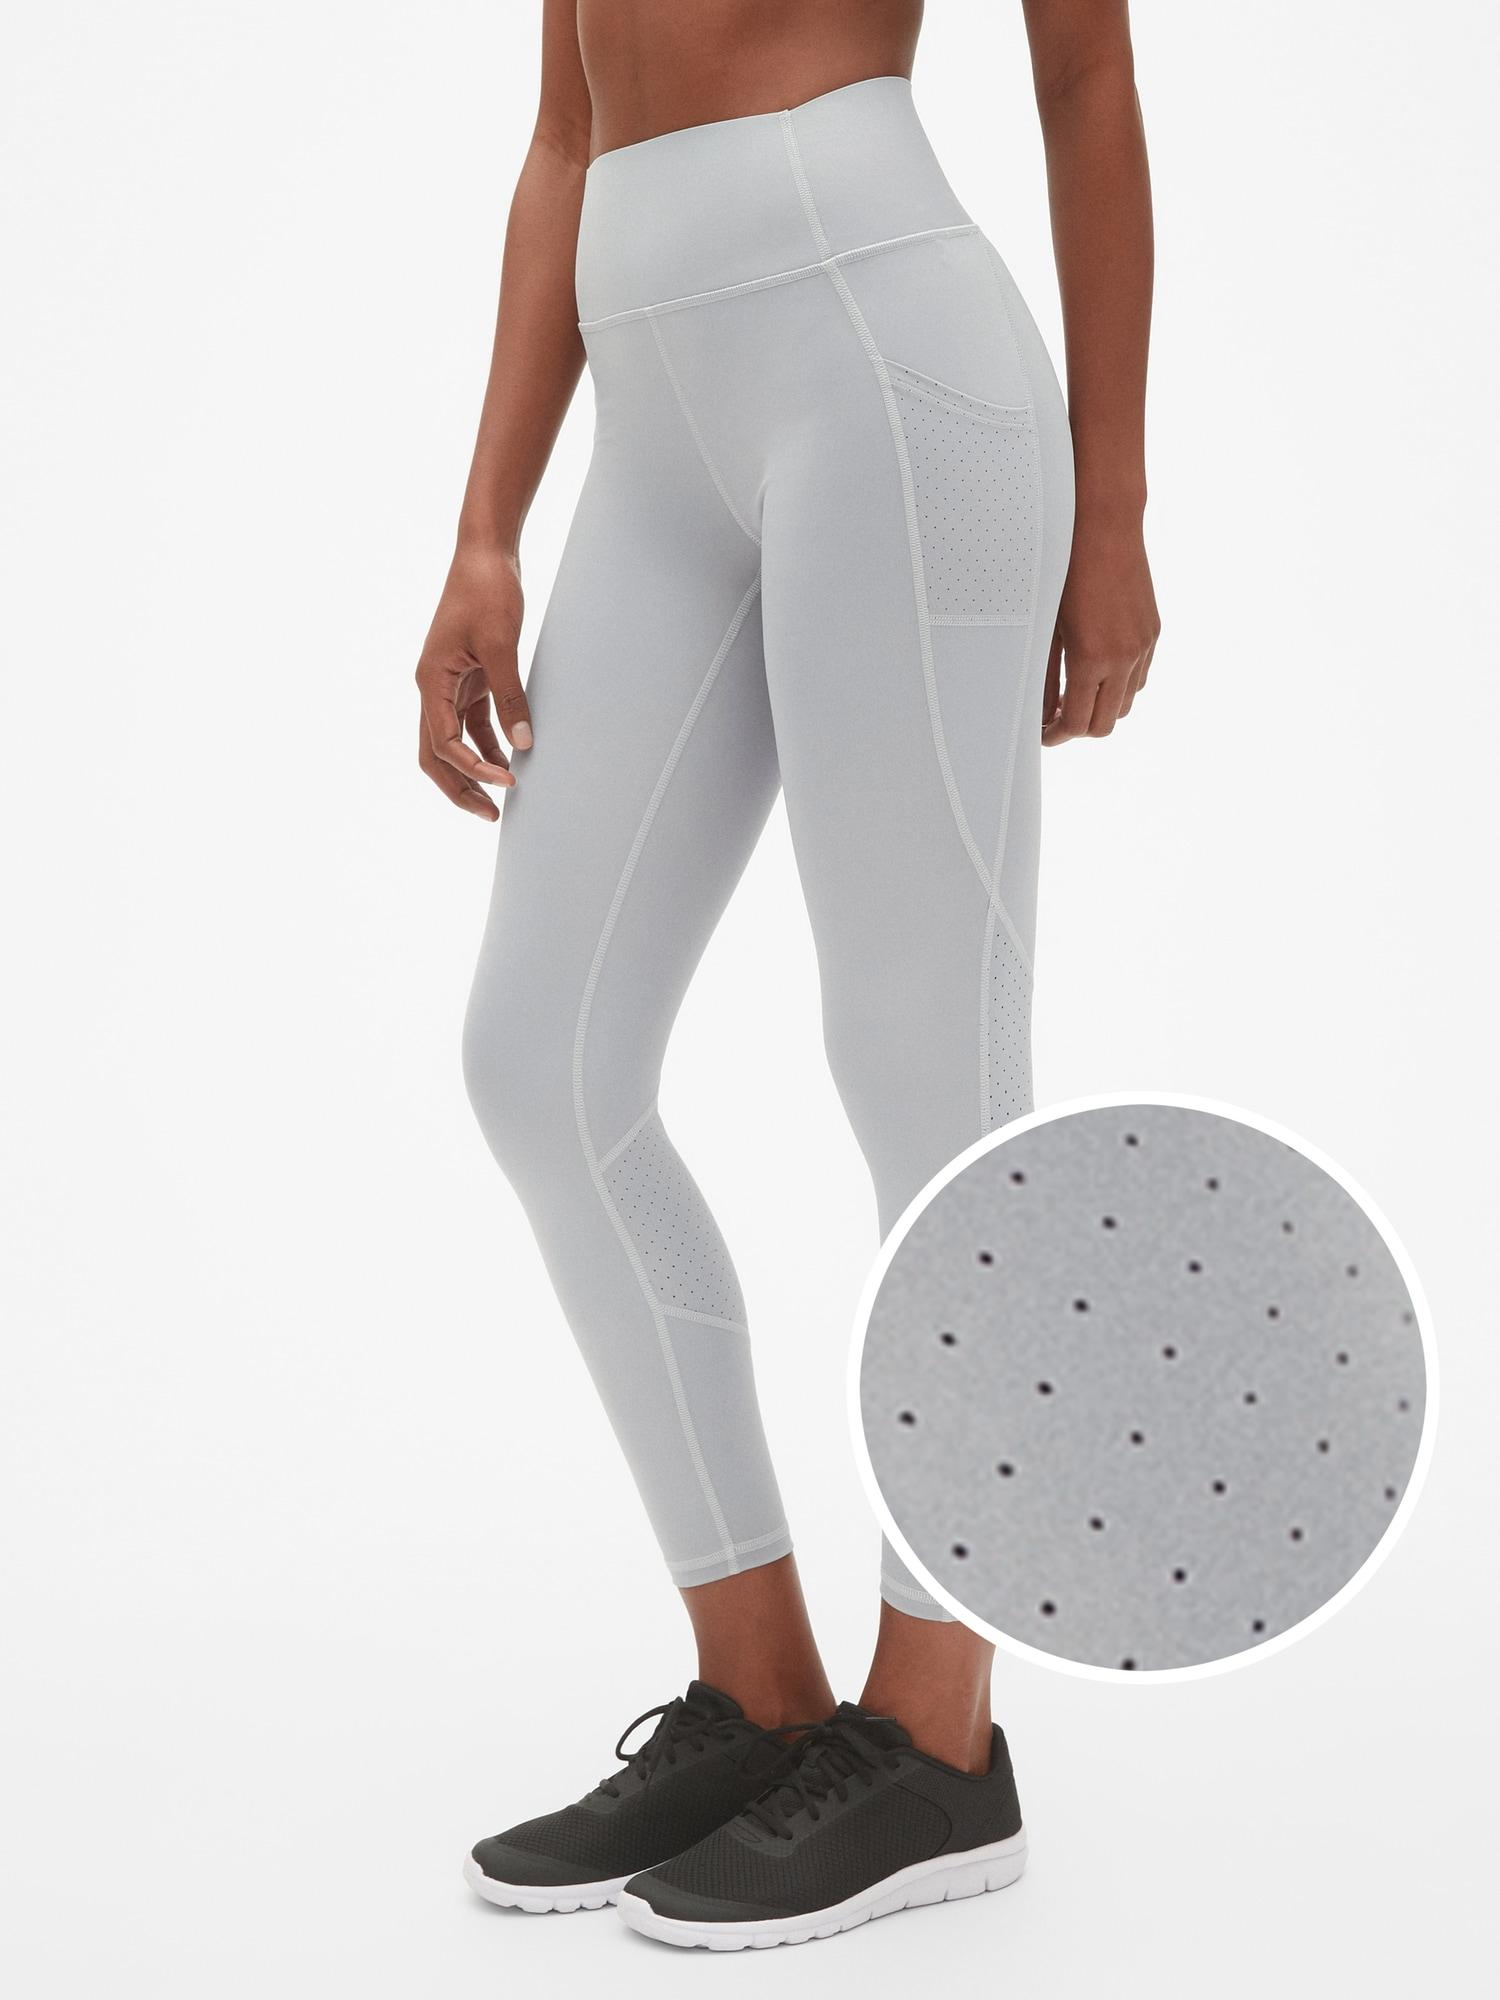 96c9b66119788 Gap. Women's Gray Fit High Rise Perforated Pocket 7/8 Leggings ...